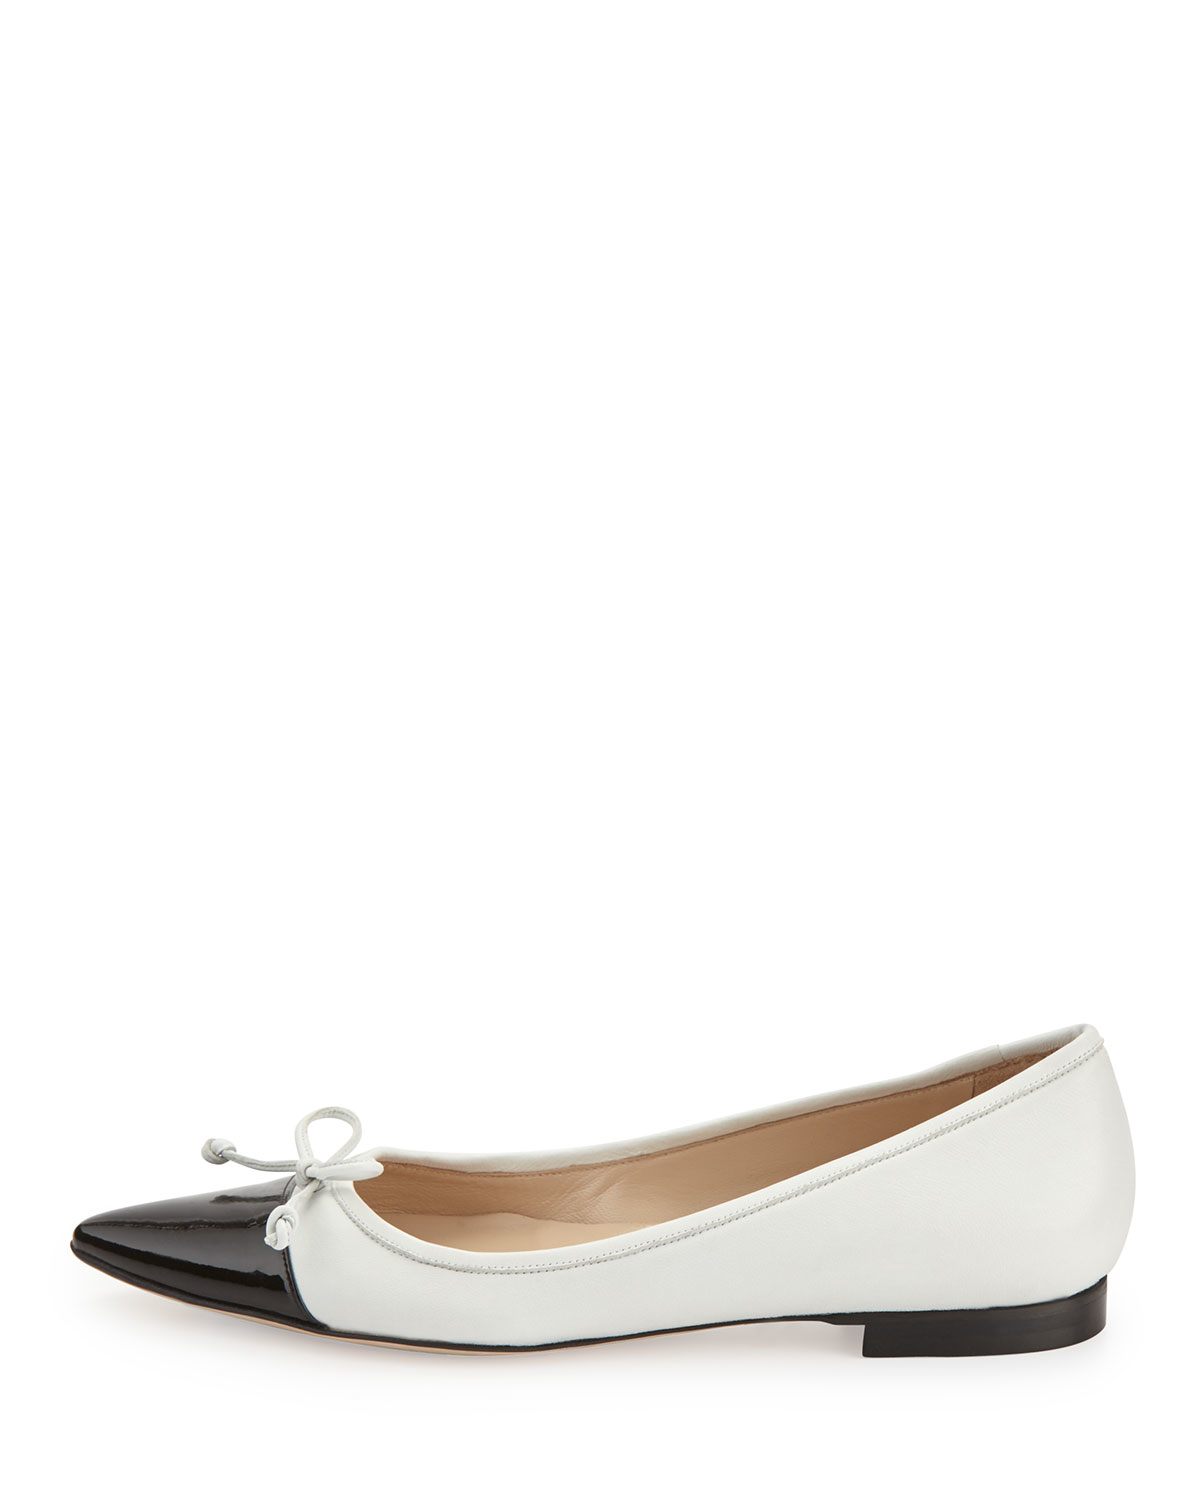 532d543f5ad8 ... authentic lyst manolo blahnik wendy pointed toe ballerina flat in black  73ad0 ca45a